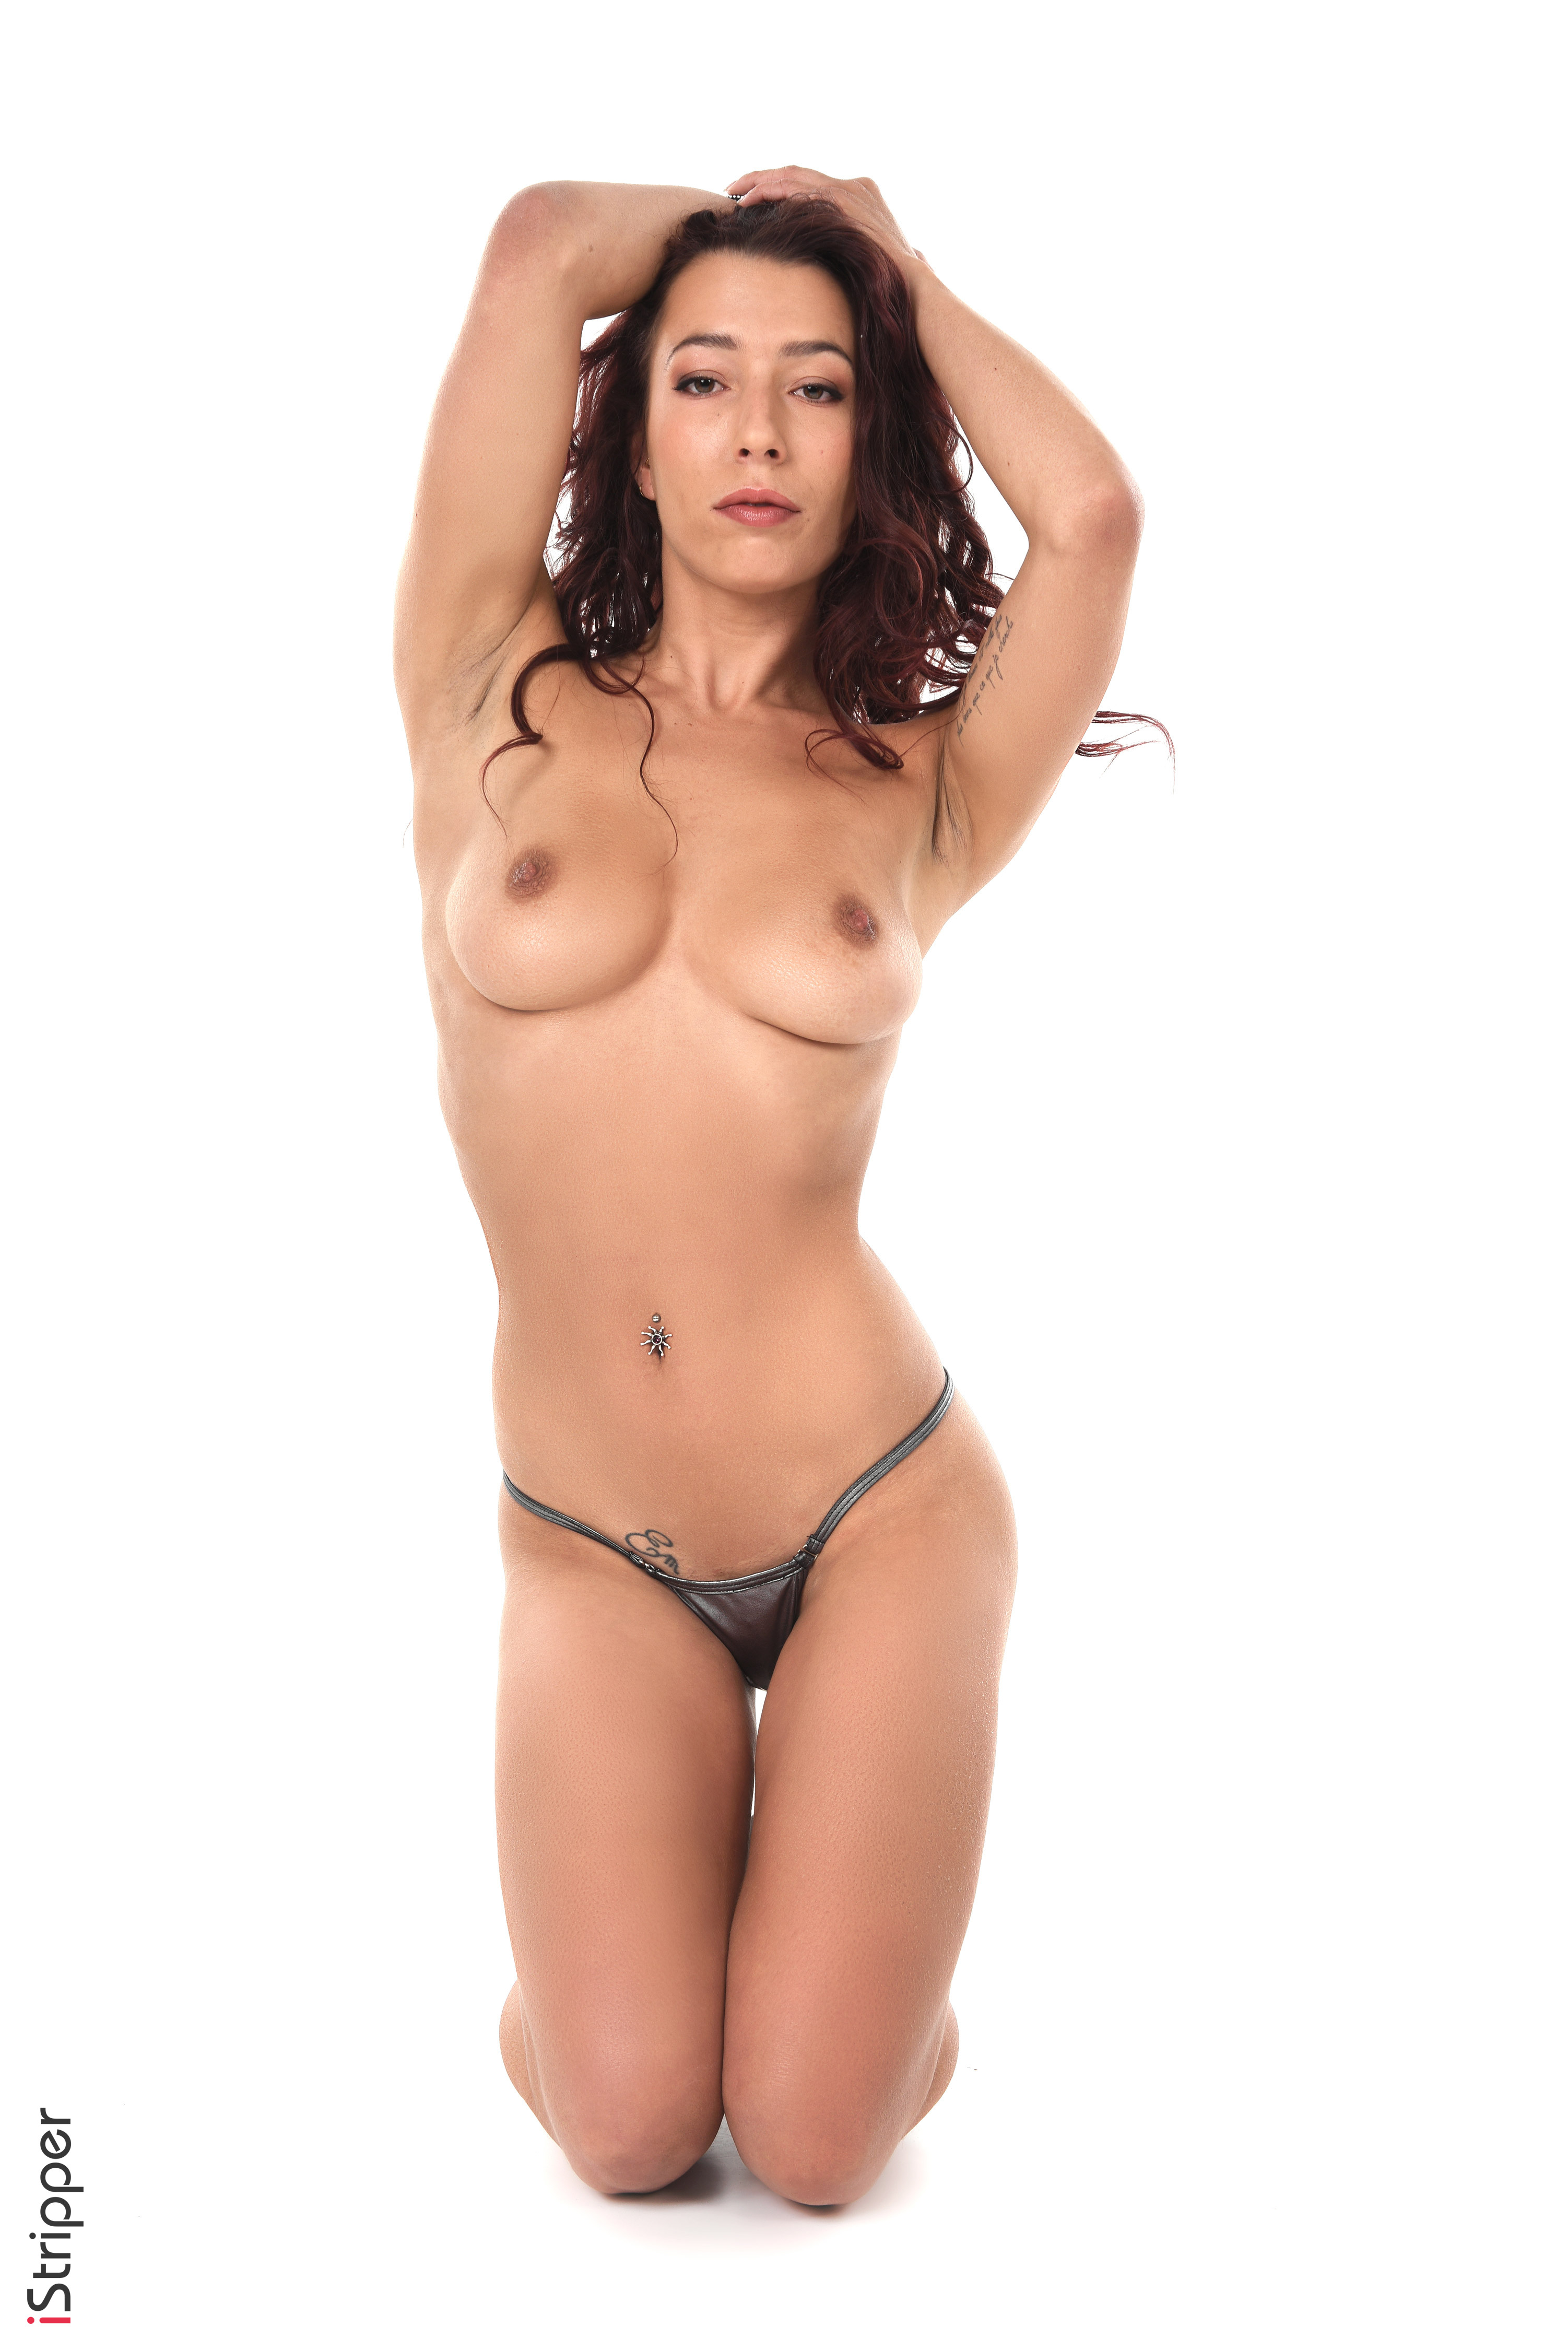 live nude girl wallpapers